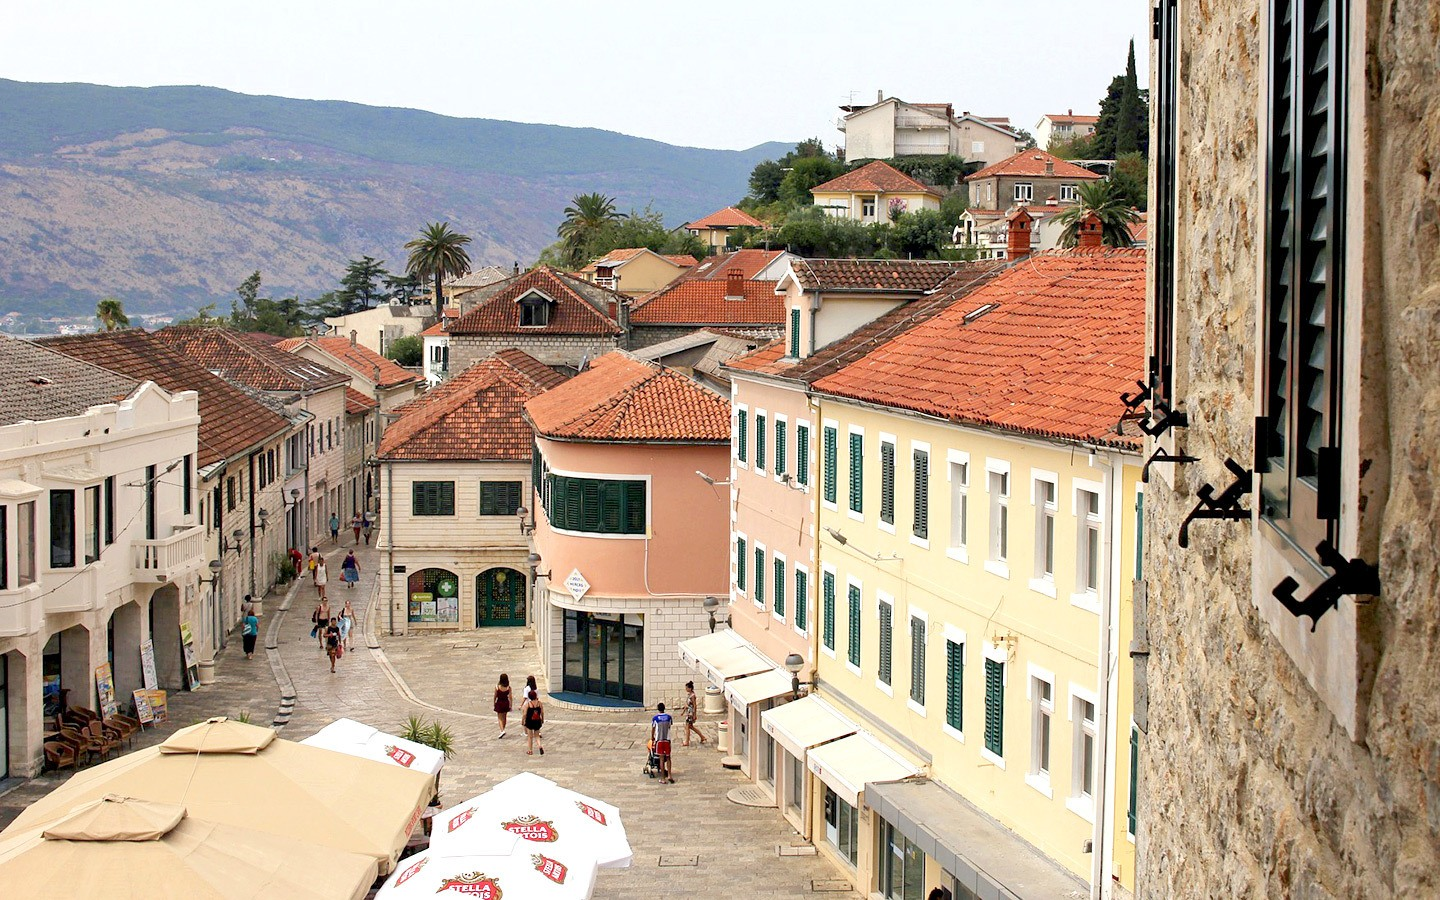 Old buildings in Herceg Novi in the Bay of Kotor, Montenegro